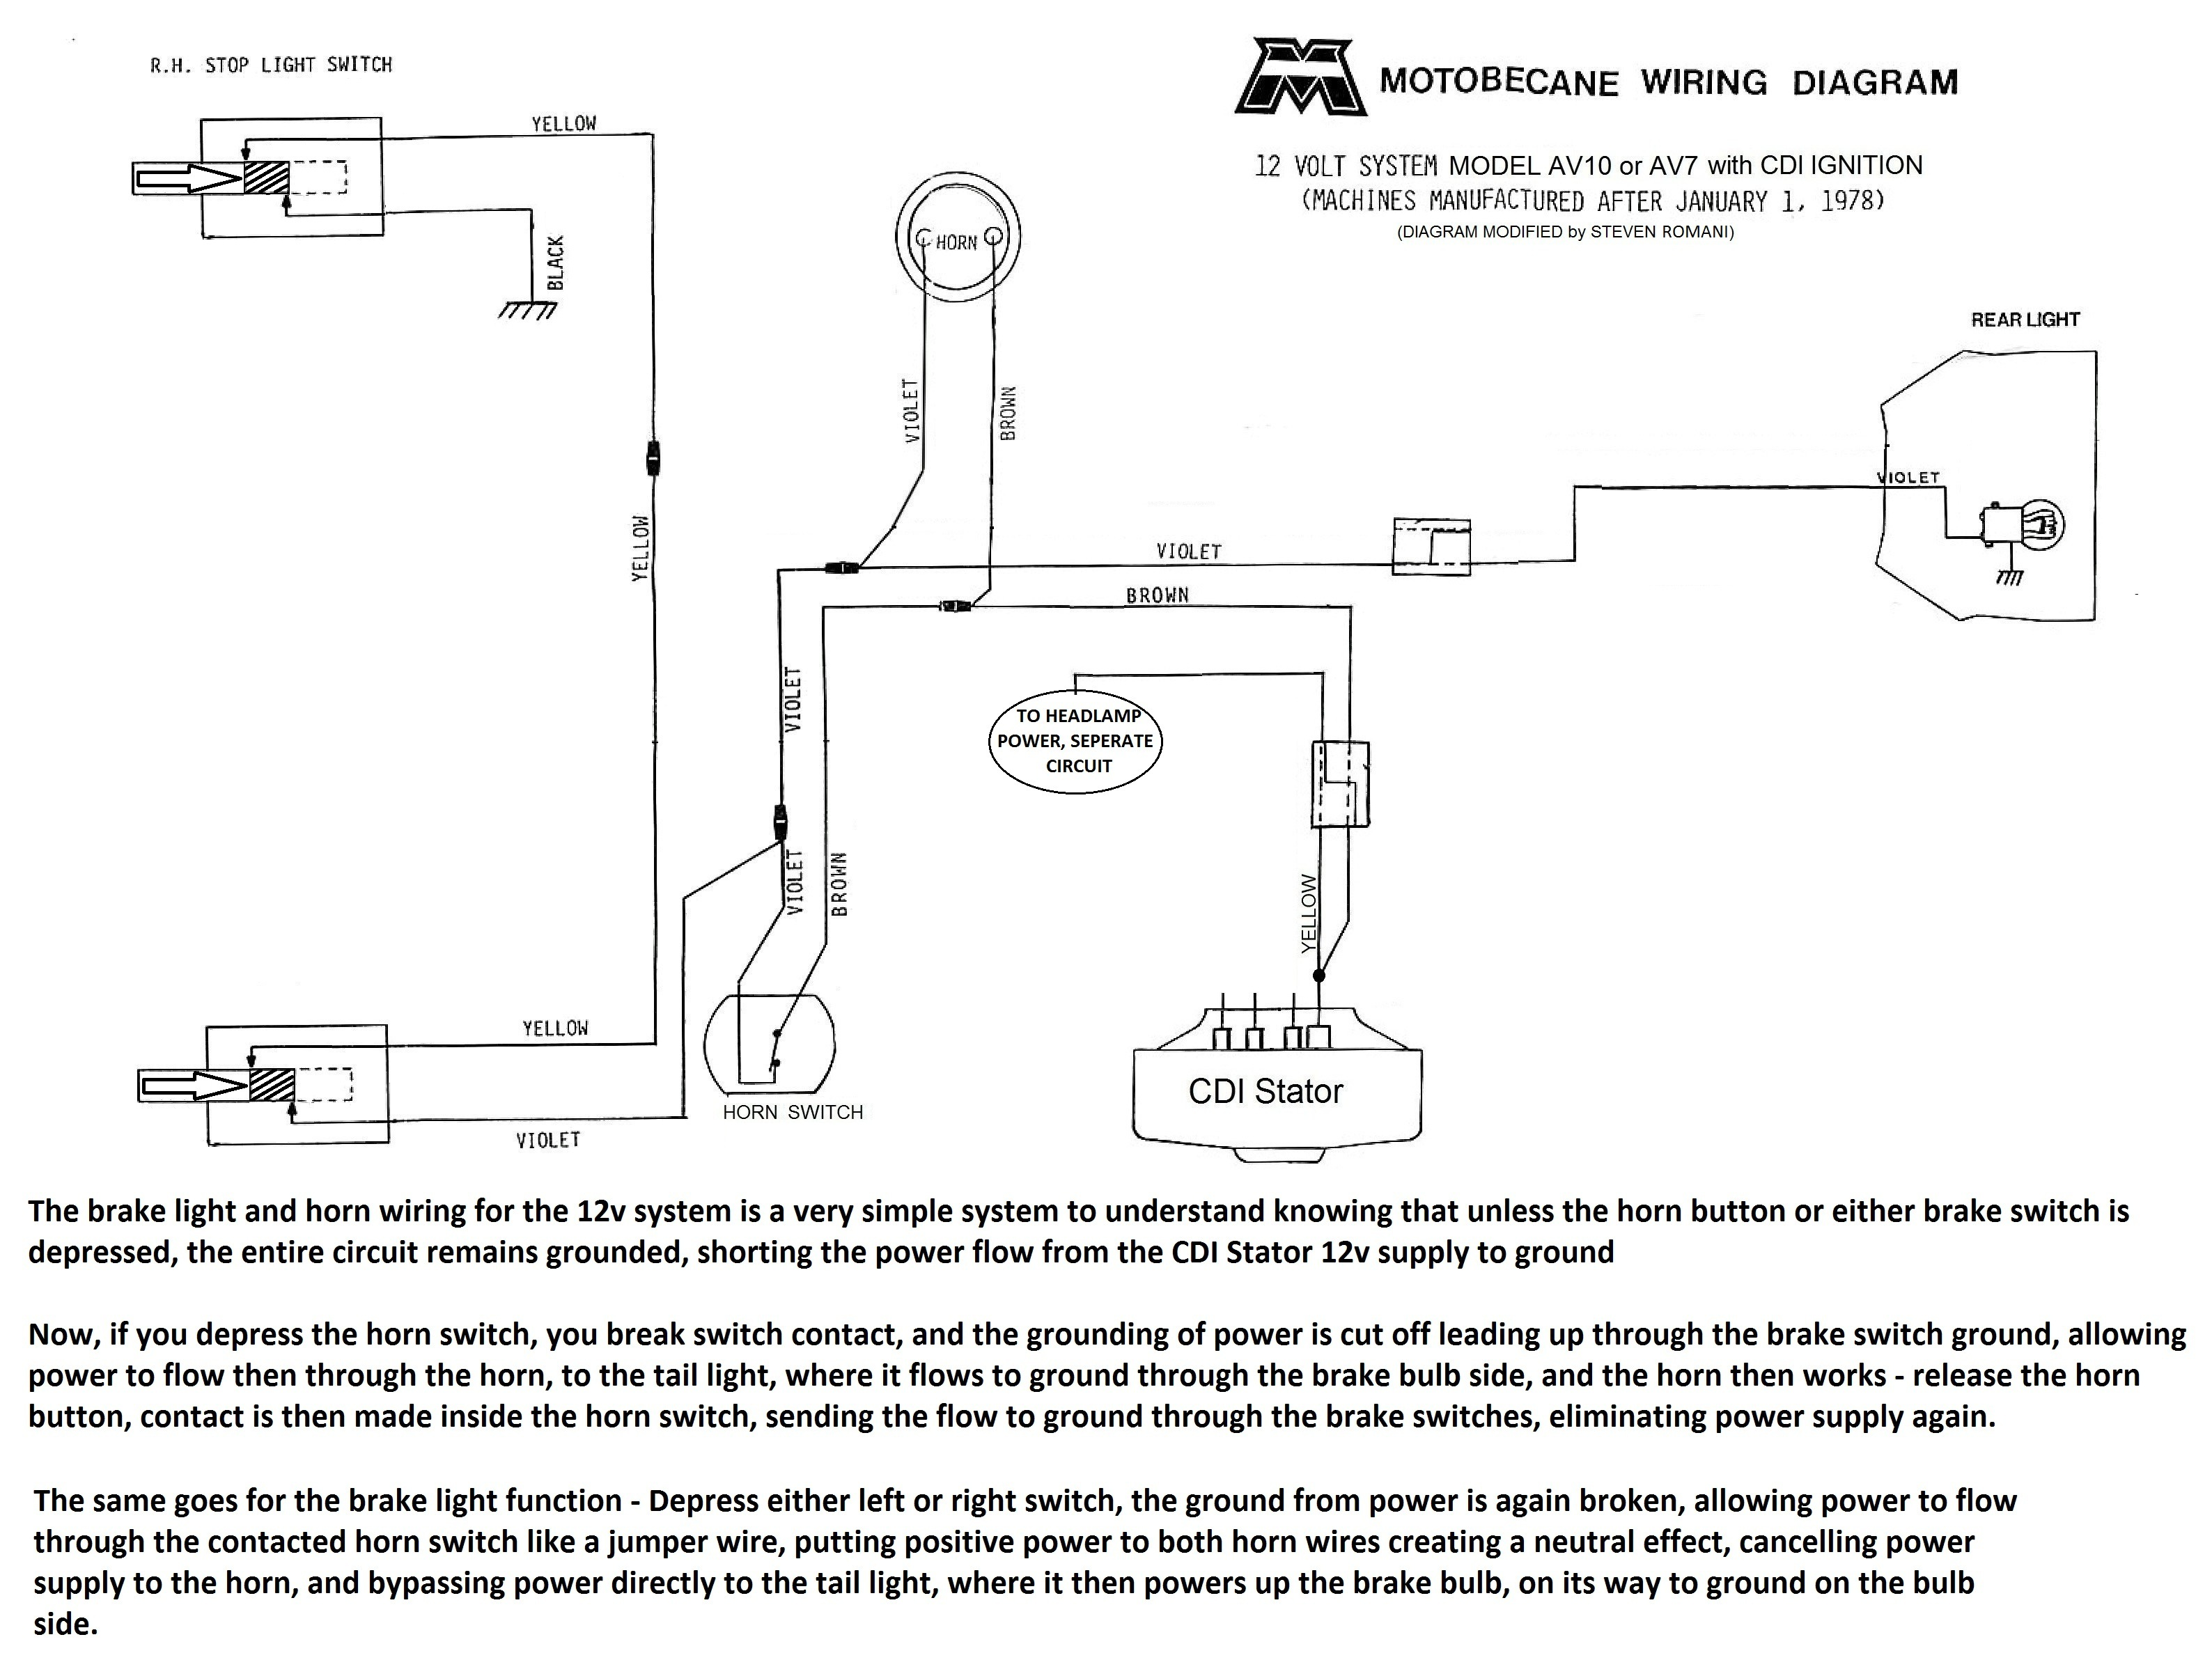 motobecane wiring diagrams moped wiki victory wiring diagram motobecane 12v cdi wiring diagram av10 secondary power jpg